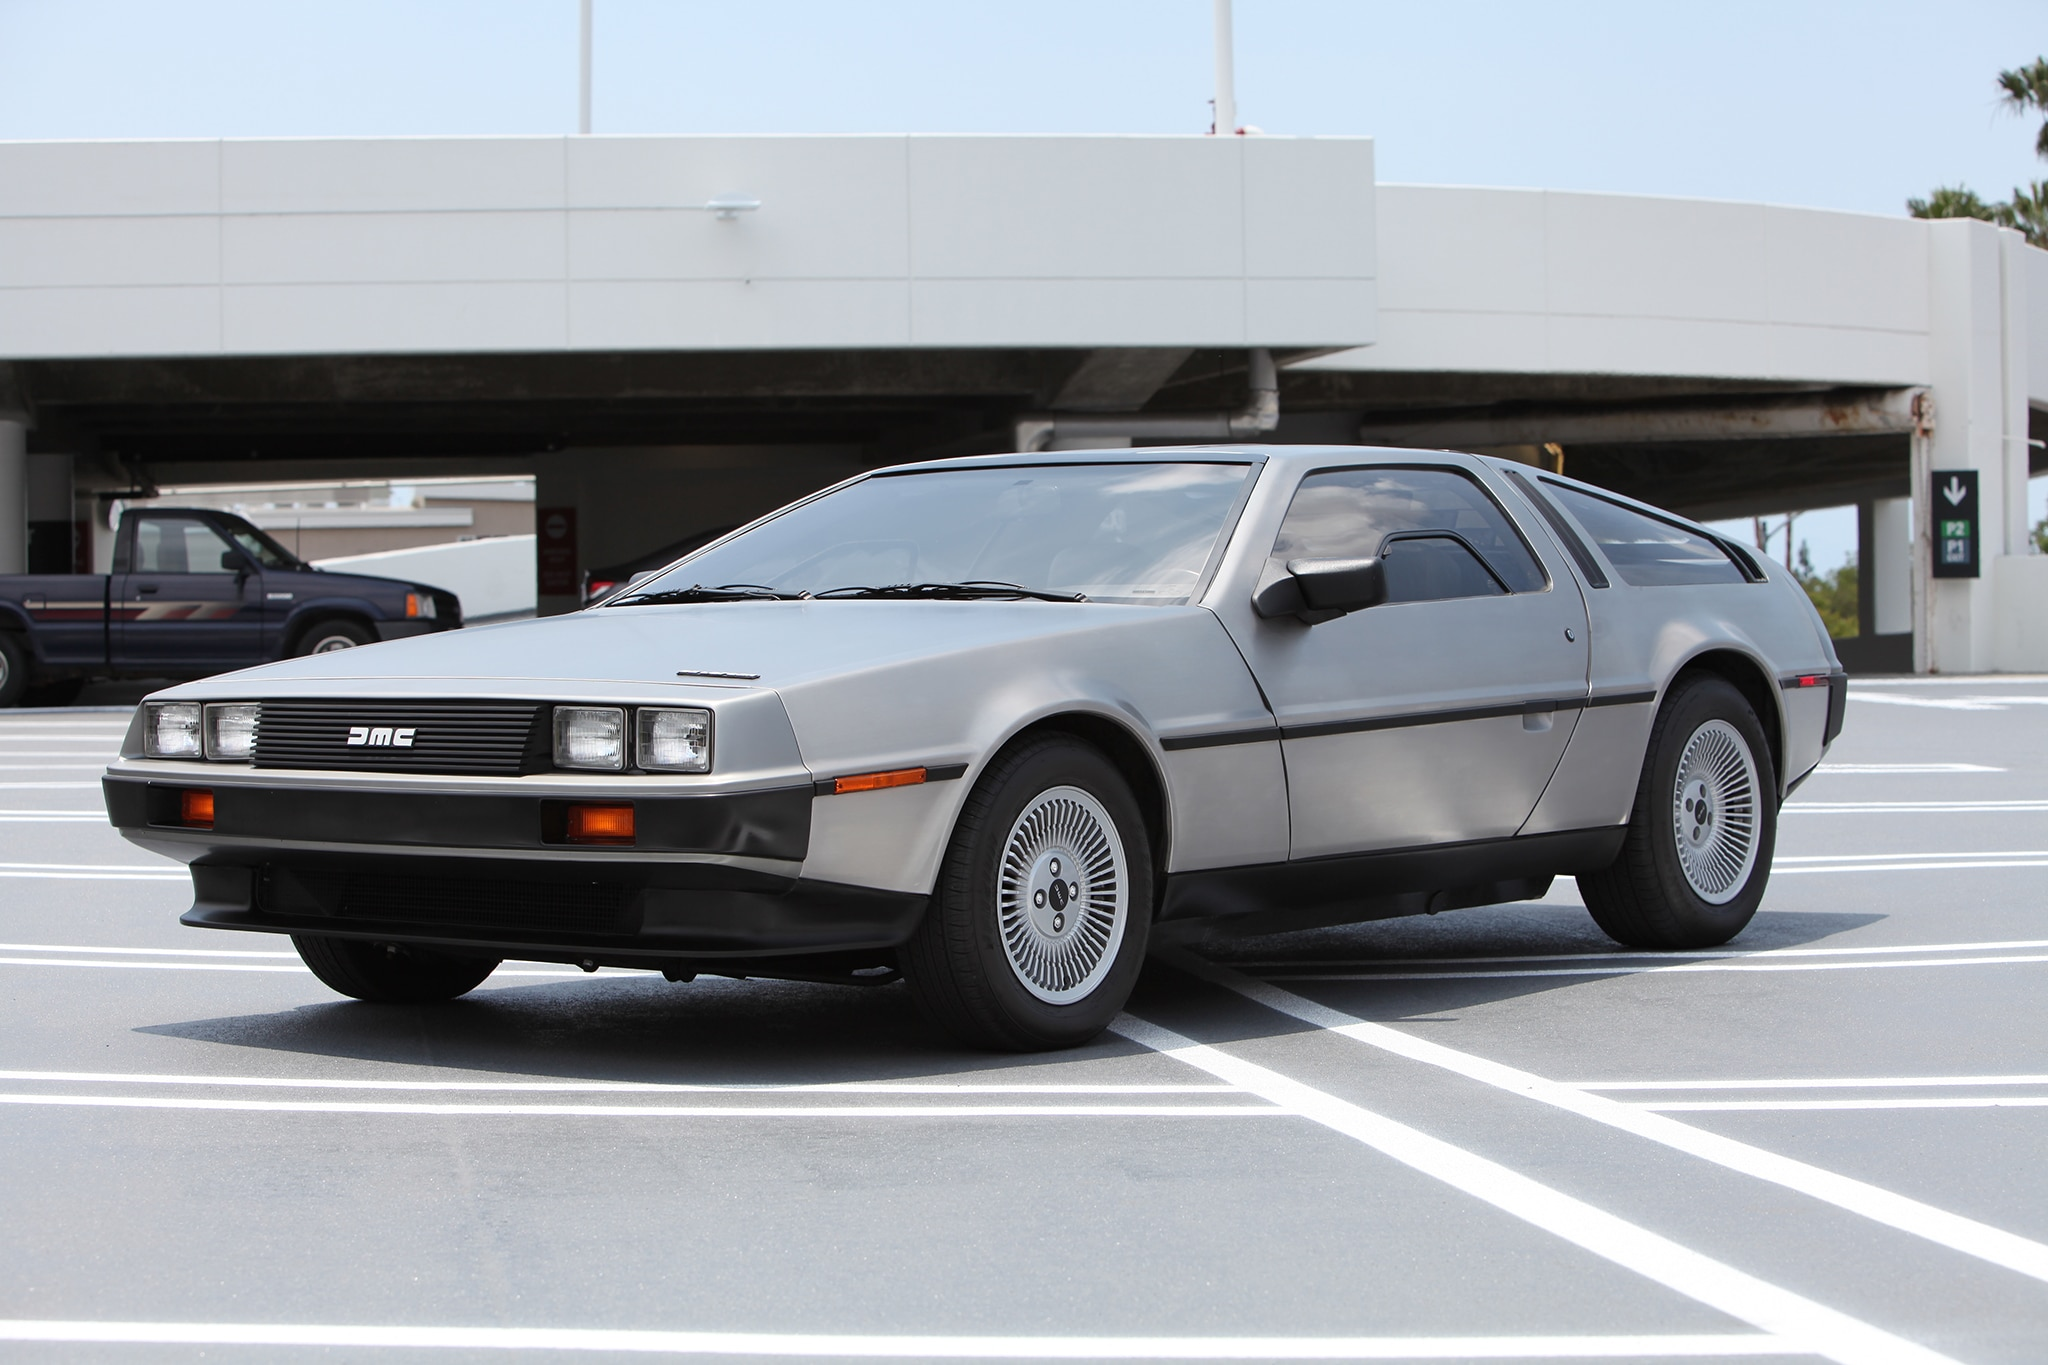 A Perfectly Restored DeLorean DMC-12 Could Be Yours